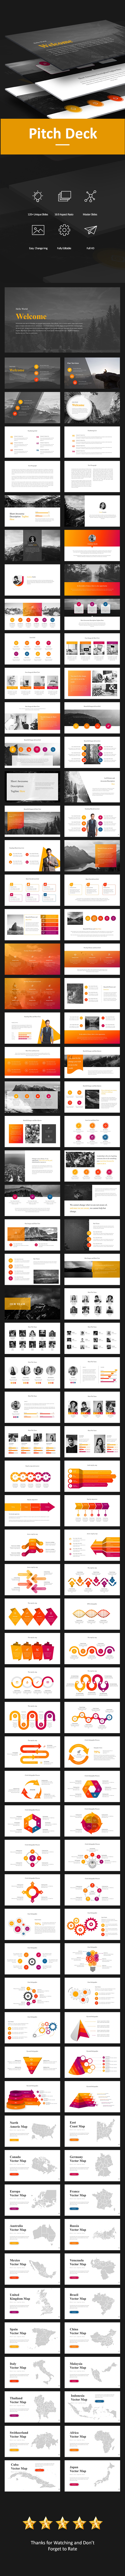 GraphicRiver Pitch Deck Keynote 20772096